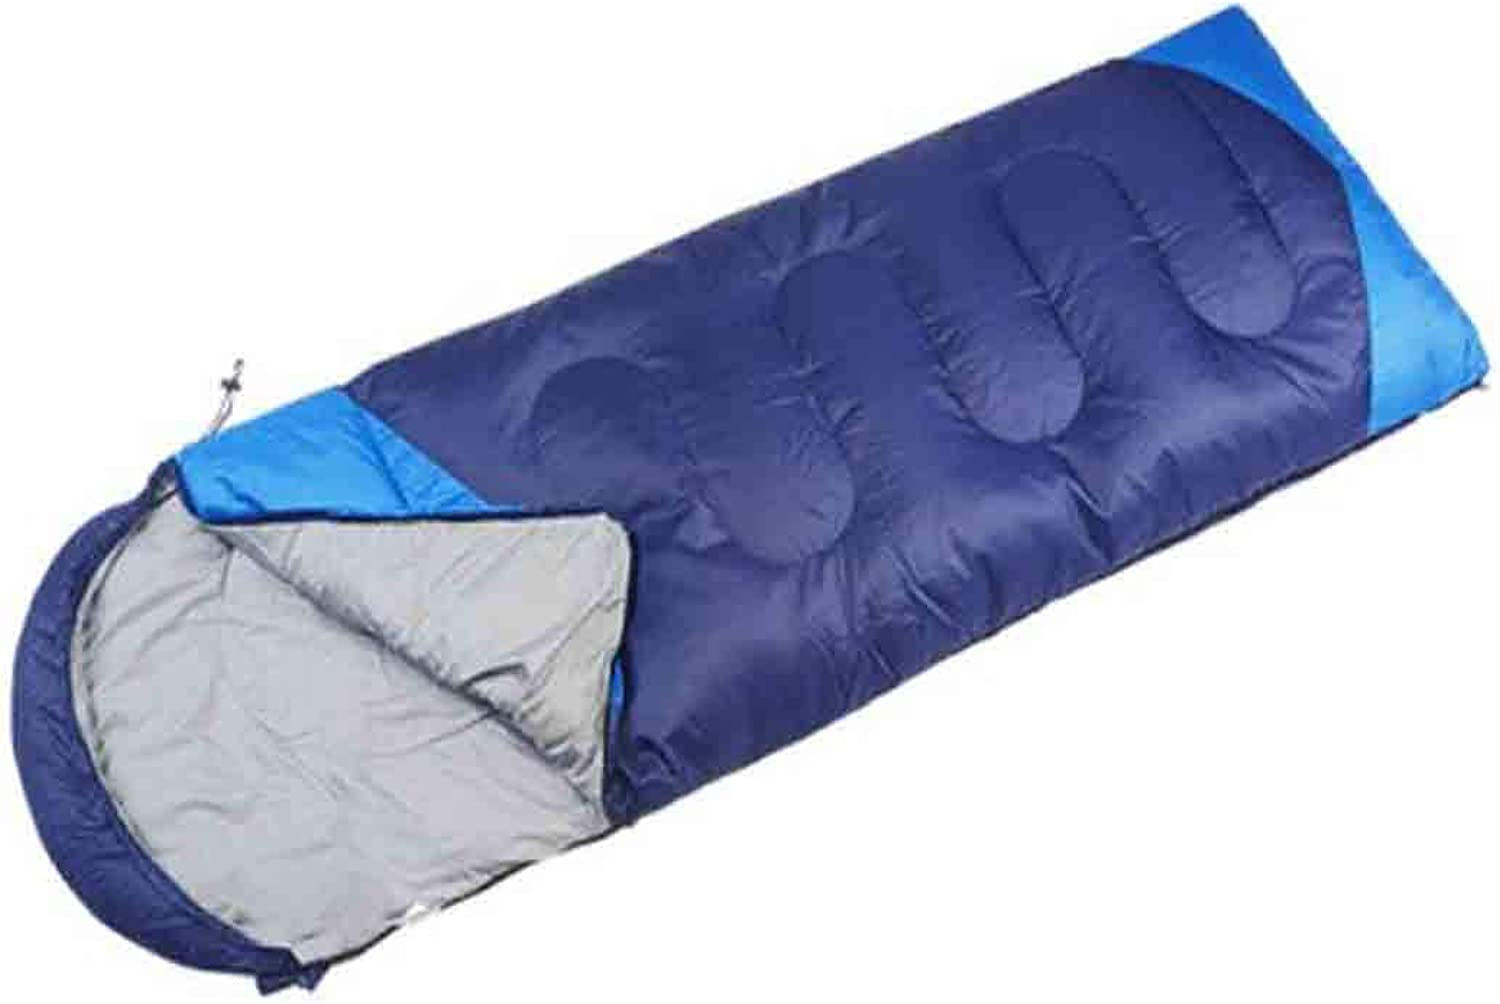 8haowenju Sleeping Bag Four Seasons, Wild Camping Single Sleeping Bag,Single, Dark bluee. Size  86.6  29.5 (inch)